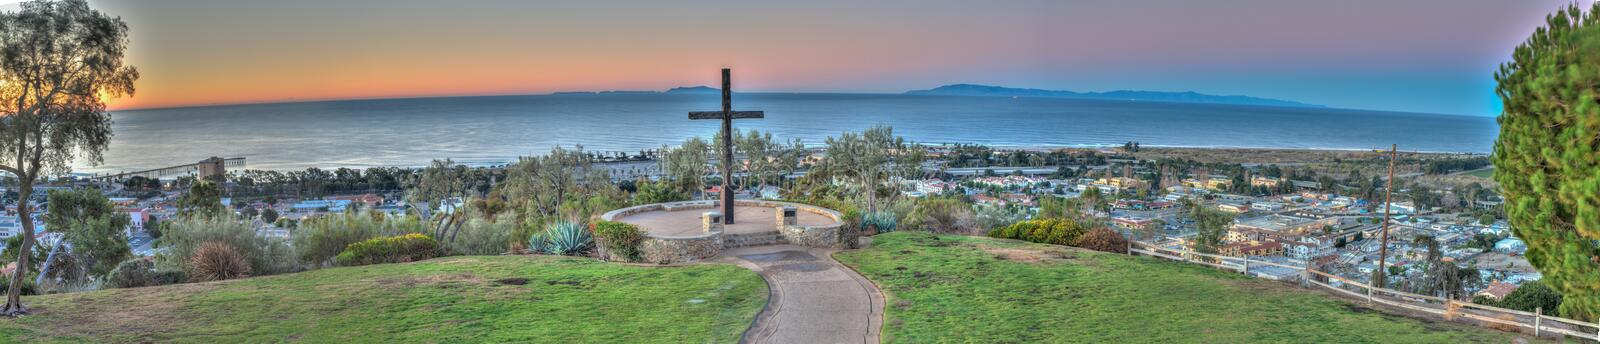 View from pier to Ventura Avenue. royalty free stock image